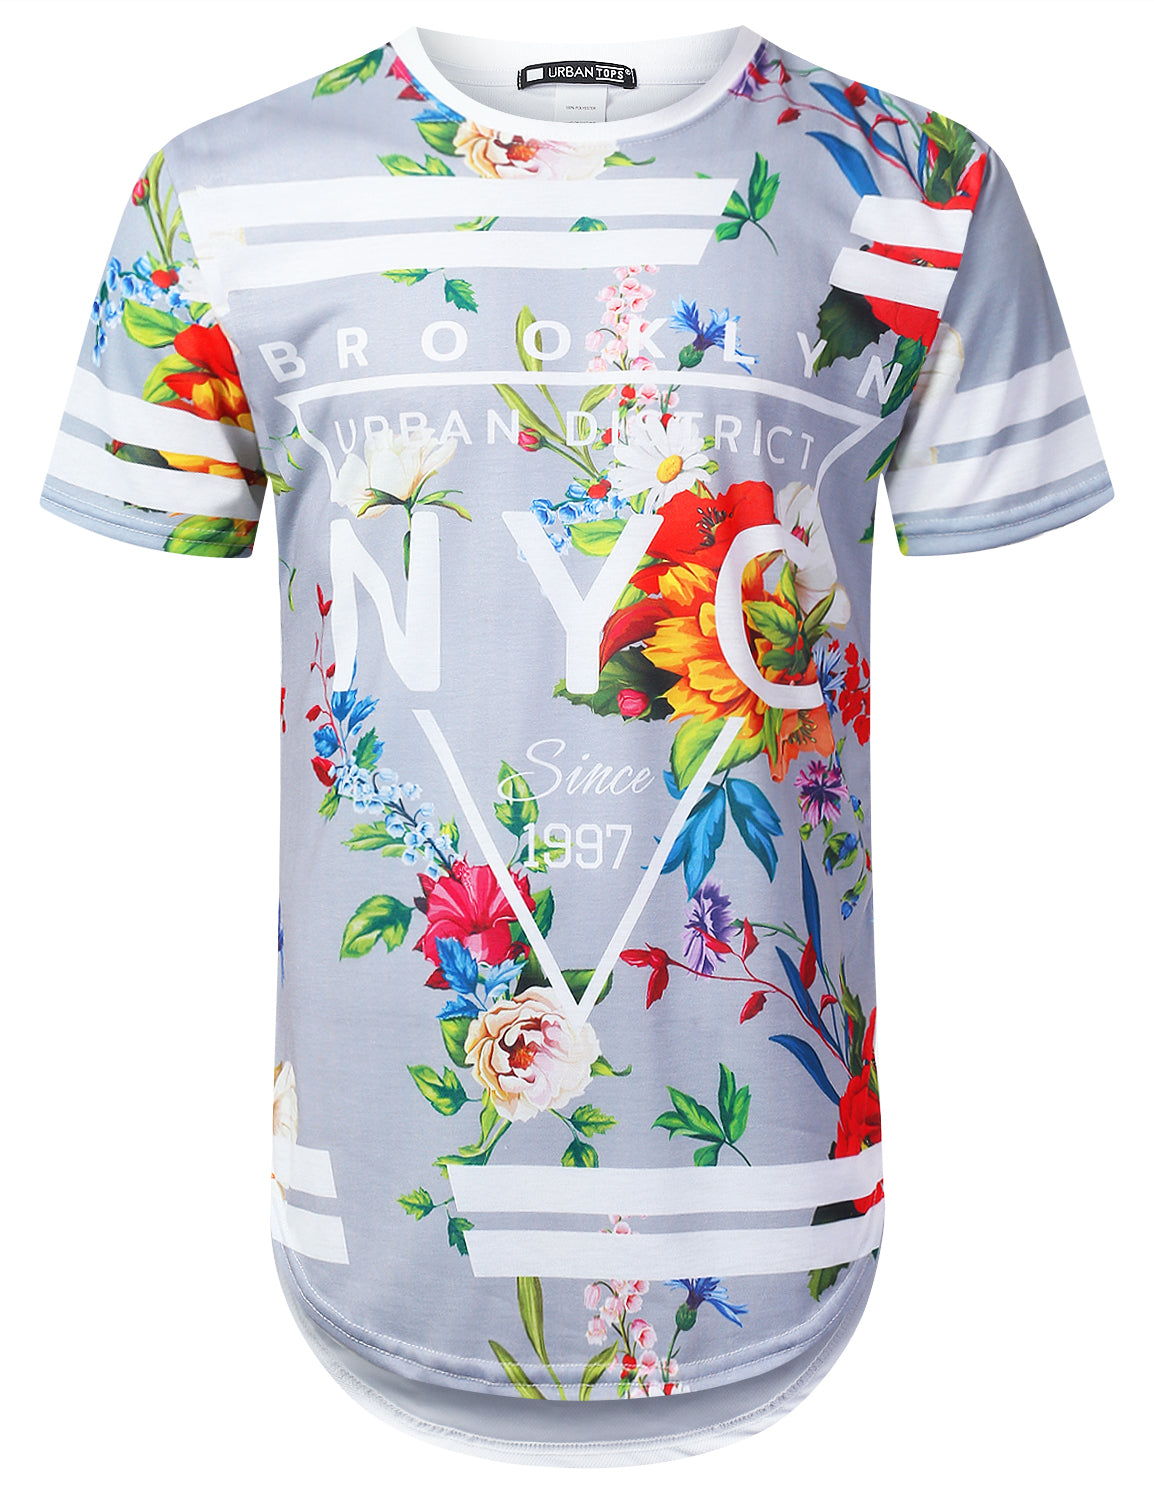 GRAY NYC Floral Longline T-shirt - URBANCREWS